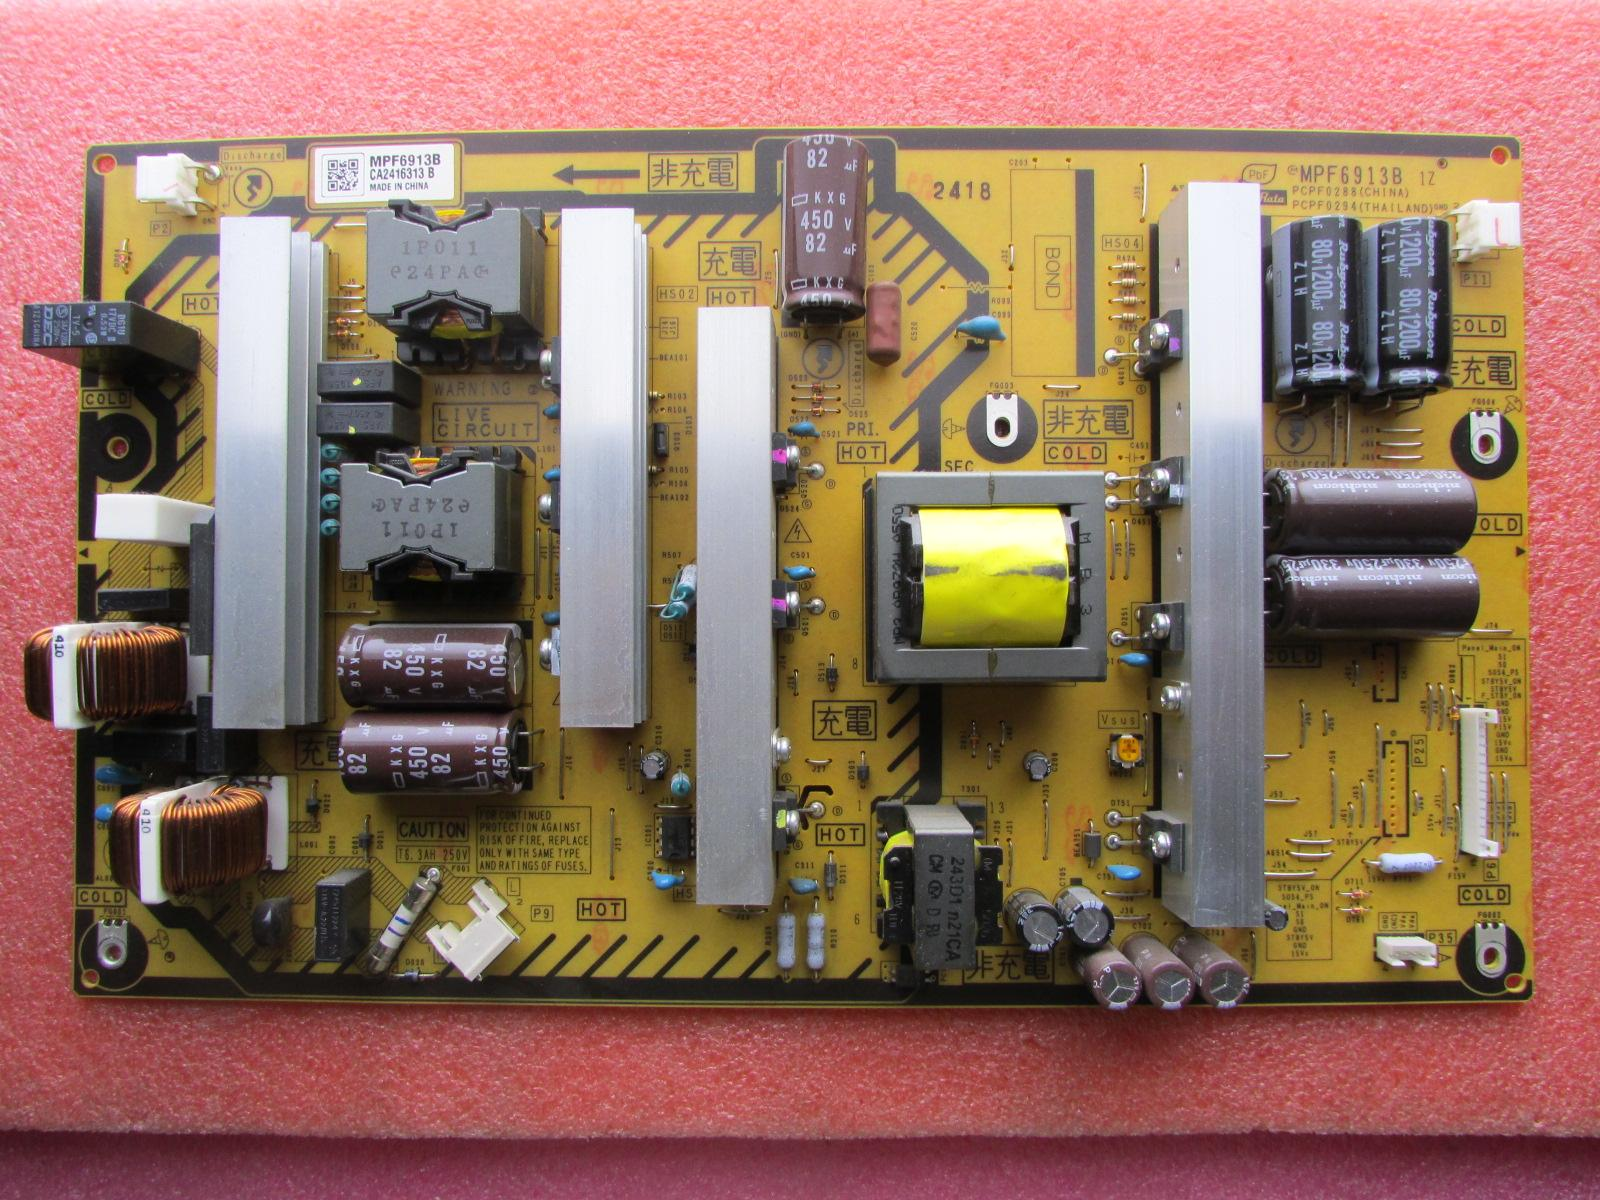 Panasonic N0AE5KK00002 (MPF6913B) Power Supply Board